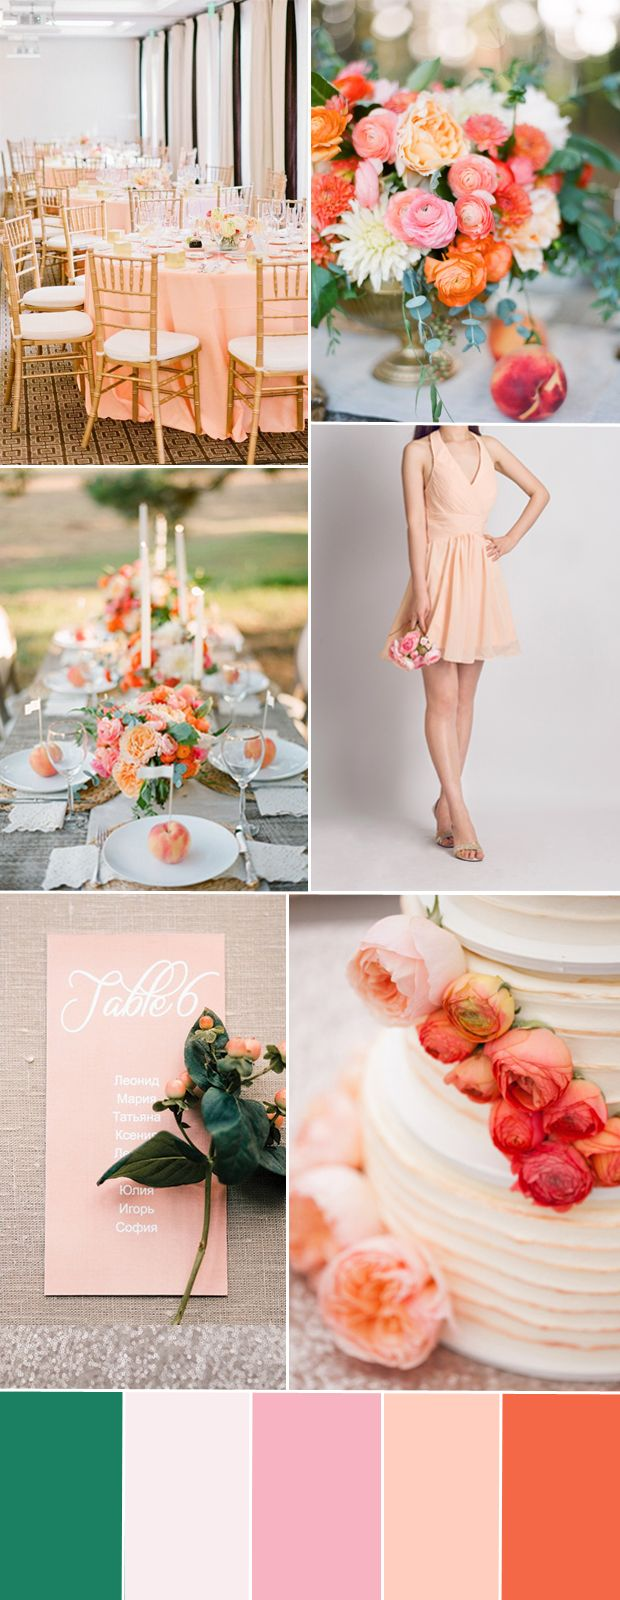 peach wedding color combos ideas and bridesmaid dress styles #weddingcolors